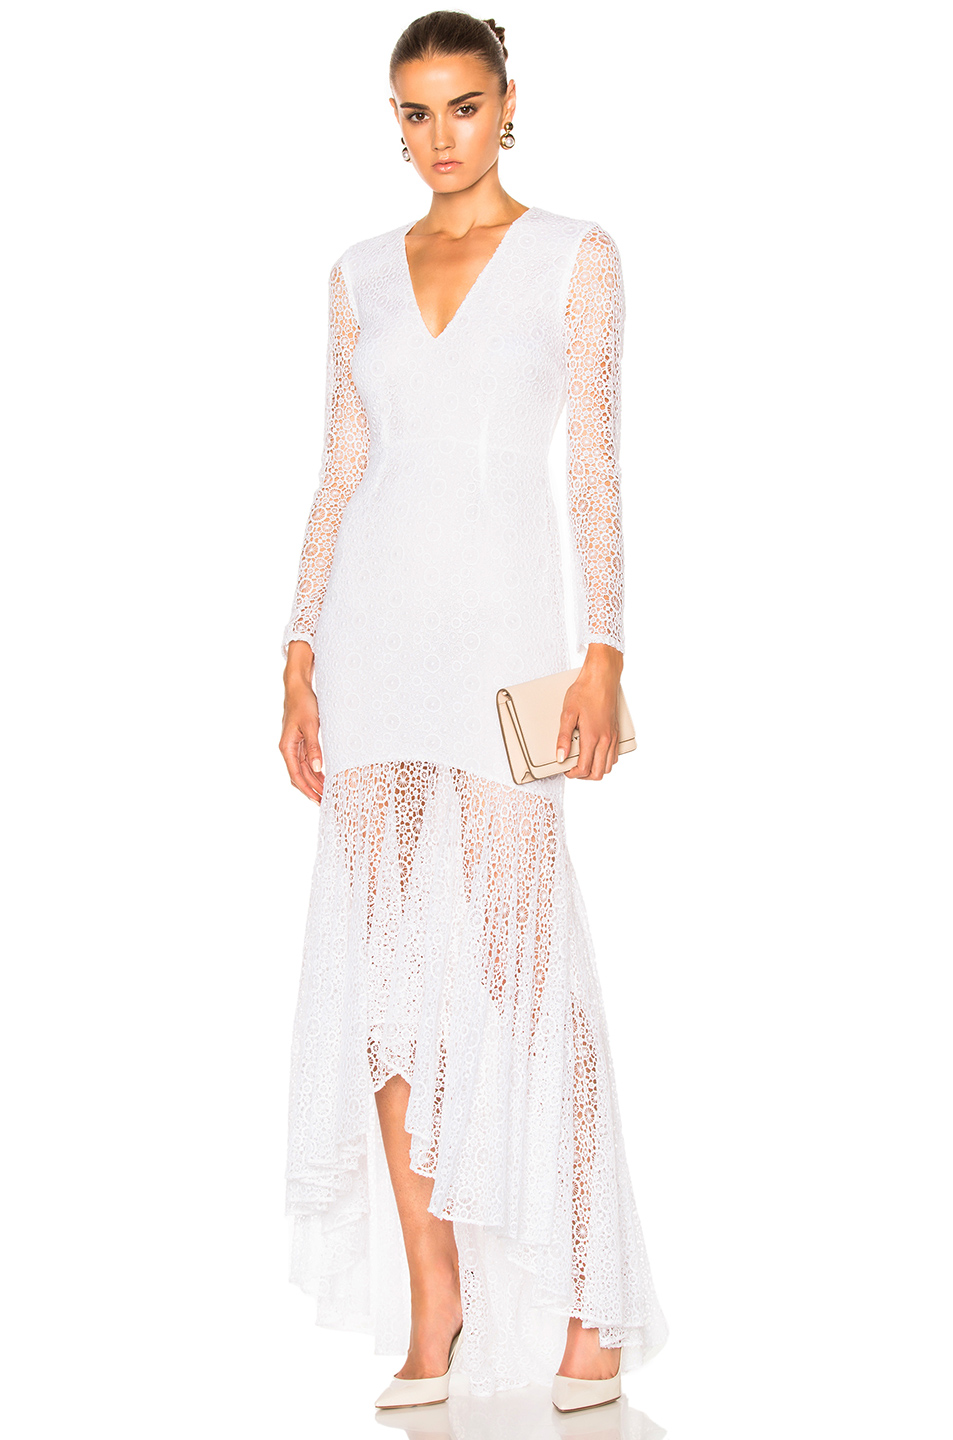 Houghton Dominica Gown in White